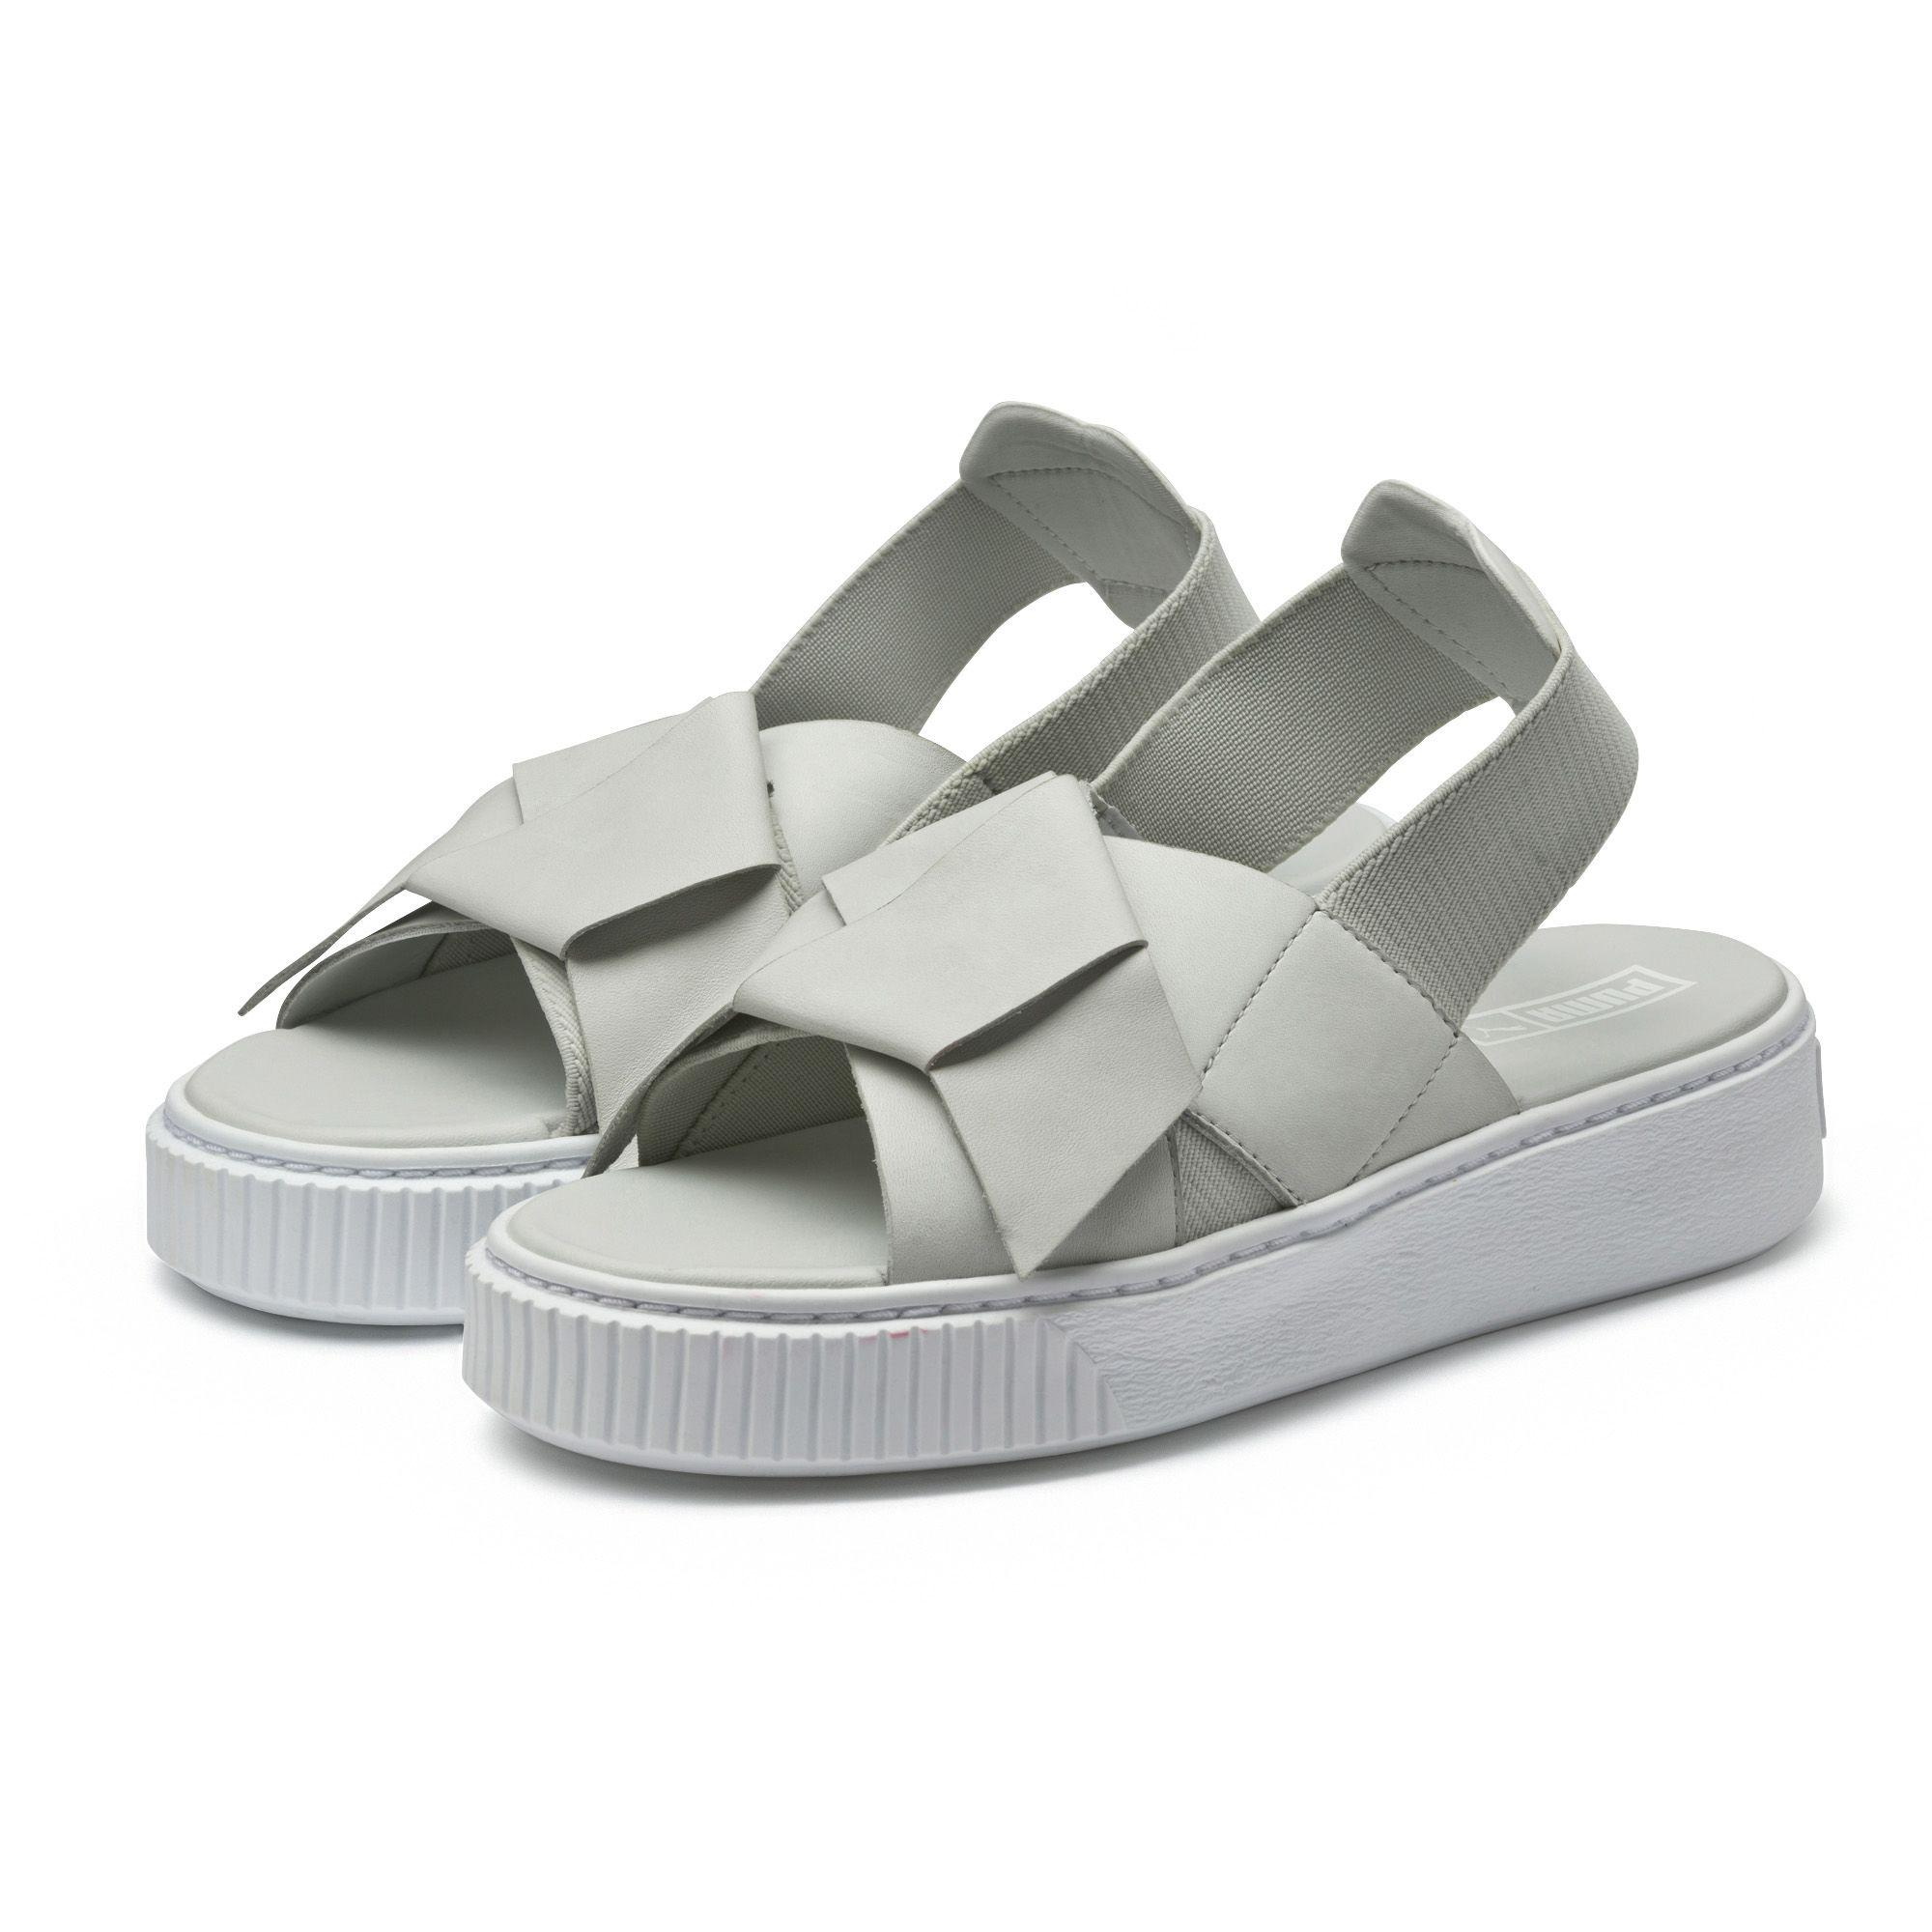 1a53c64233f Lyst - PUMA Platform Leather Women s Sandals in Gray